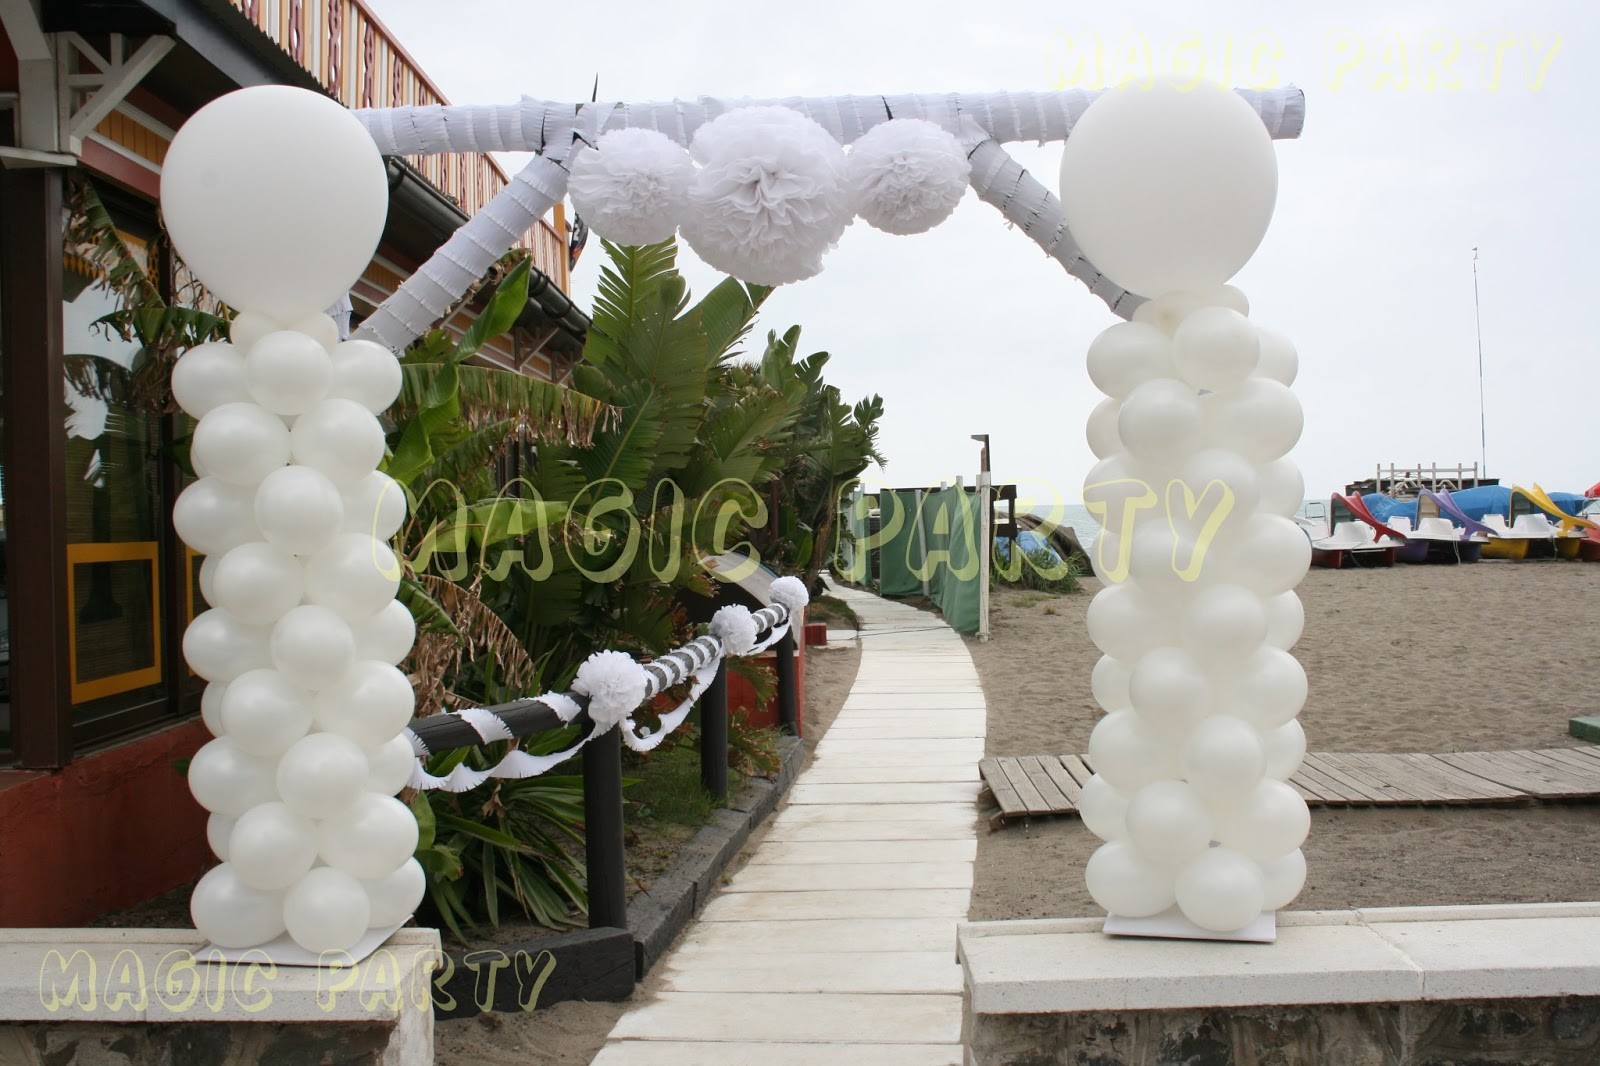 Magic party boda ibicenca en la playa for Arreglos con globos para boda en jardin